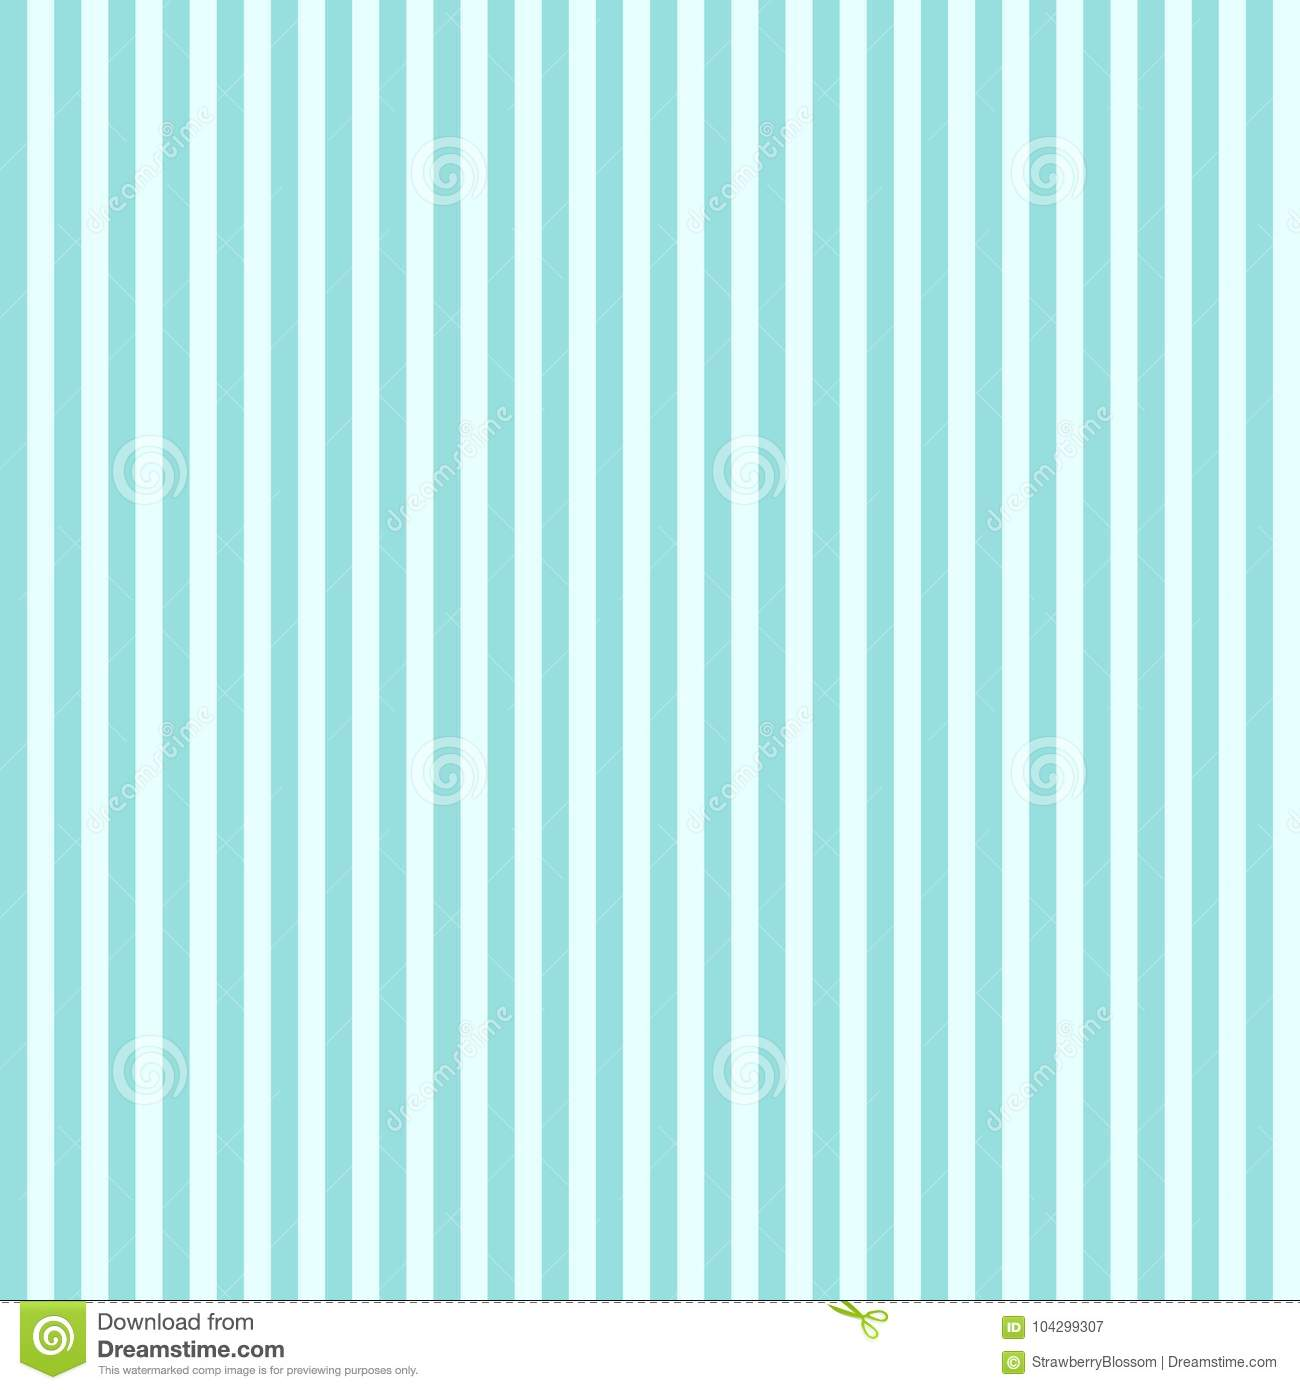 Background Pattern Stripe Seamless Vector Texture Green Aqua Pastel Two Tone Colors Wallpaper Backdrop Vertical Striped Abstract Retro Styled